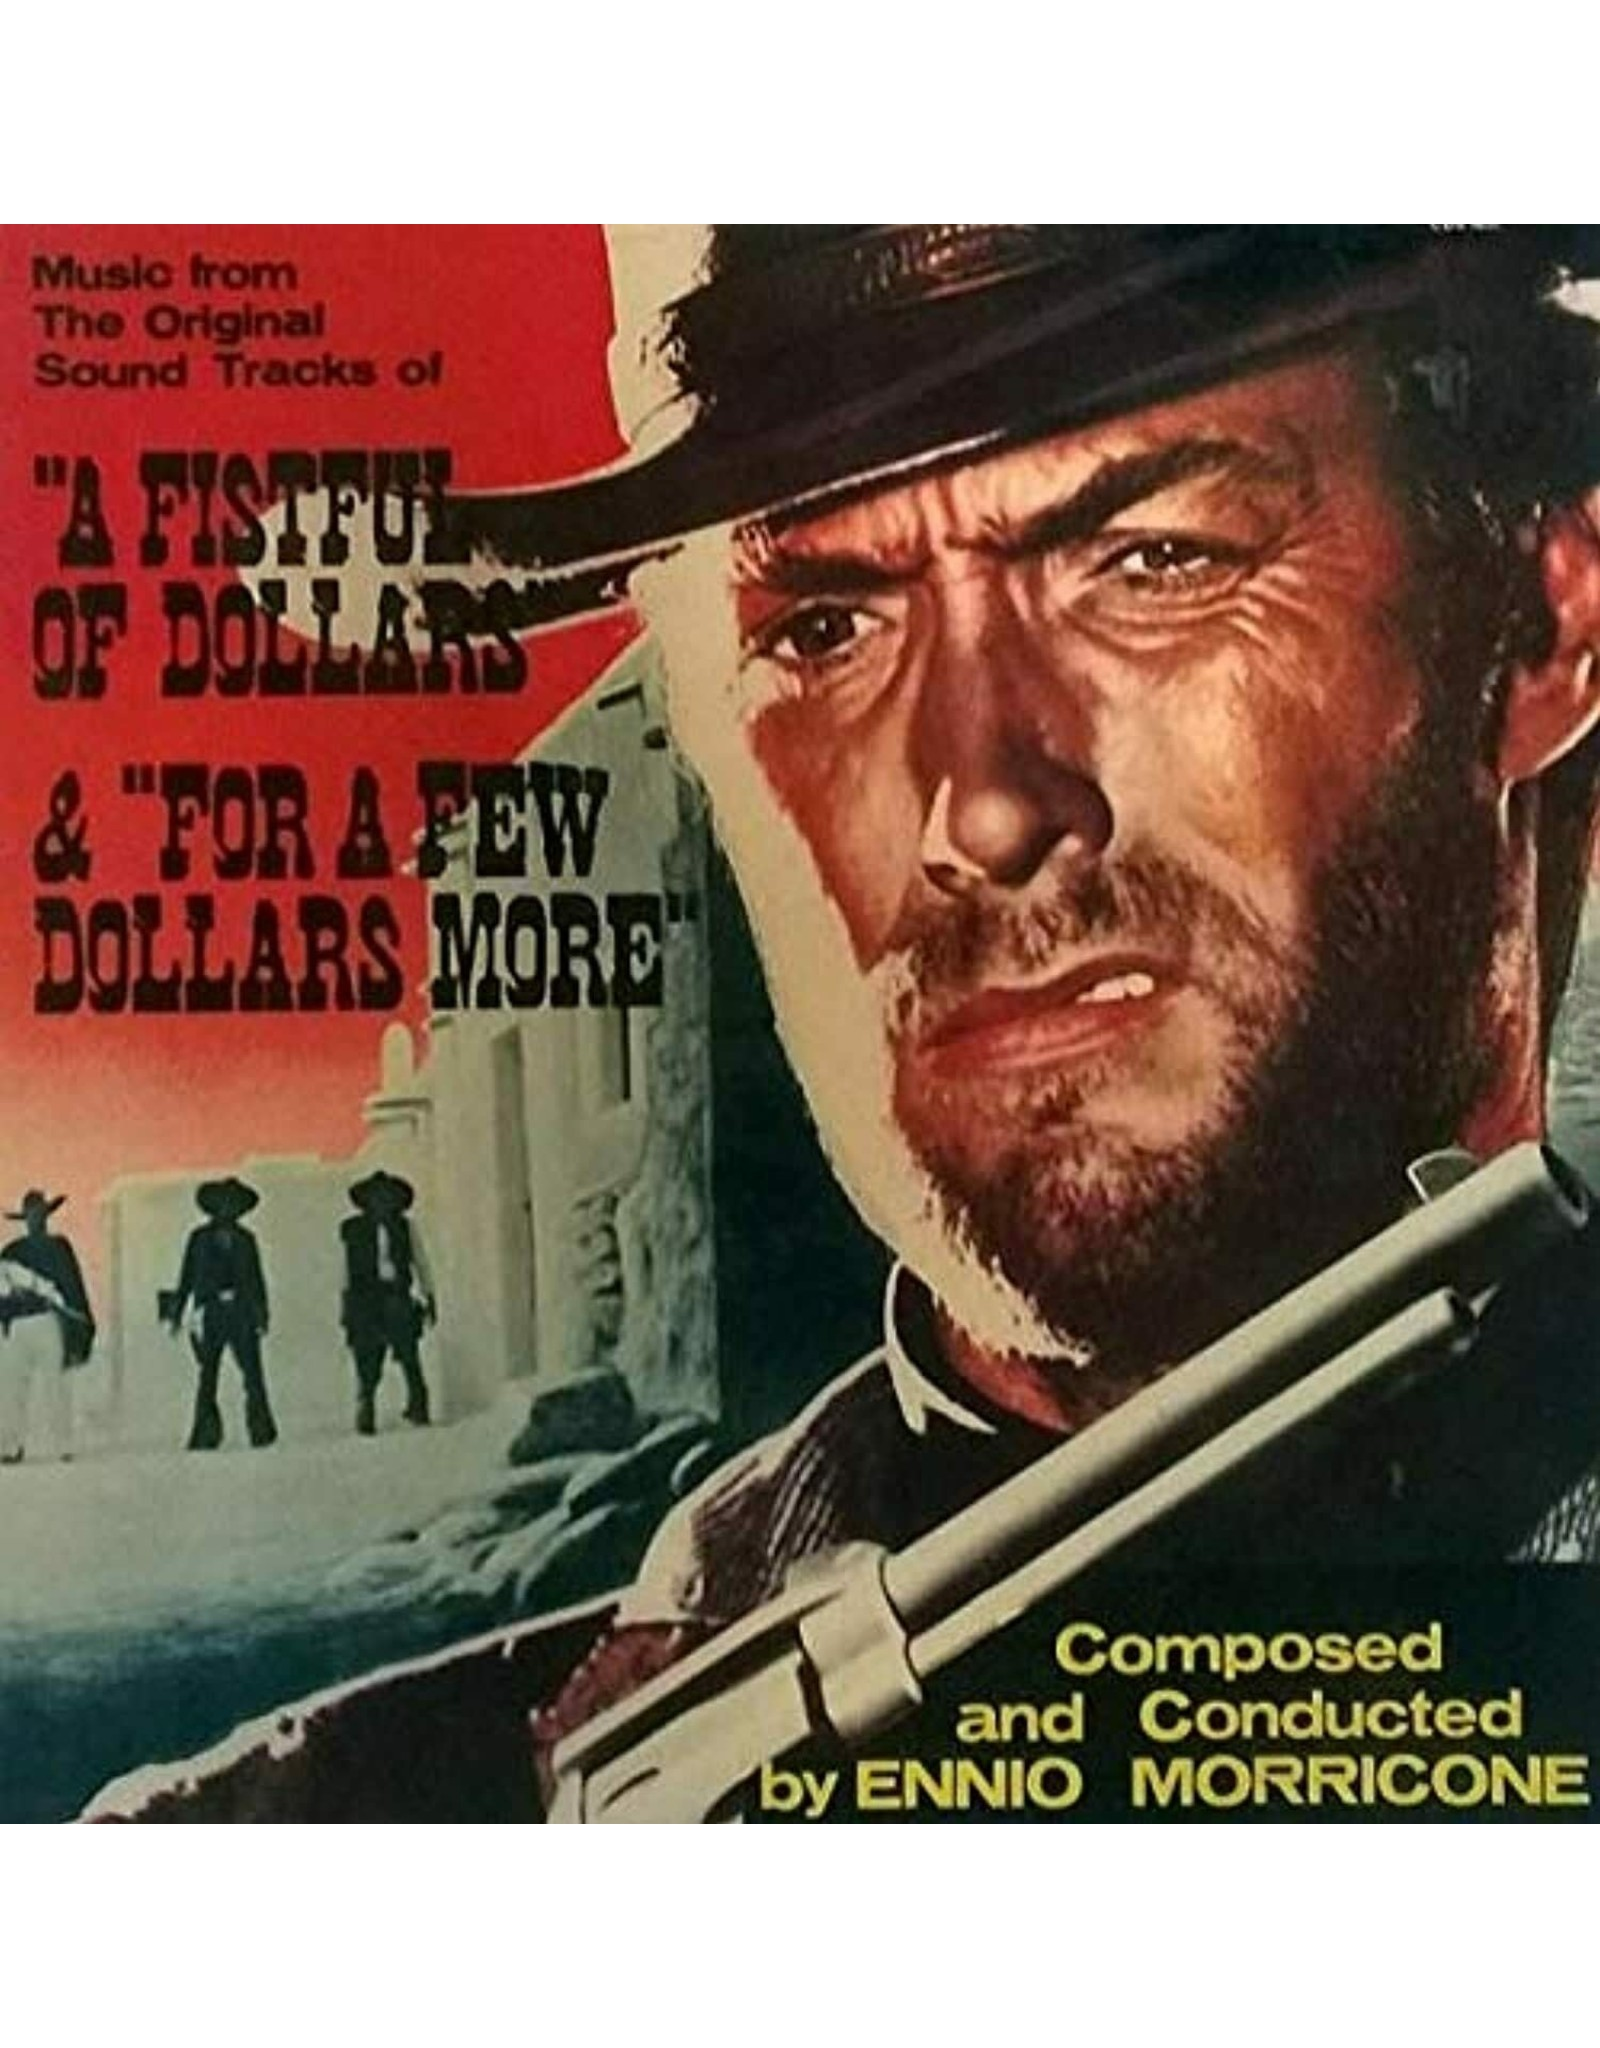 OST - A Fistful of Dollars & For a Few Dollars More LP (Limited Edition Oxblood Heavy Vinyl)